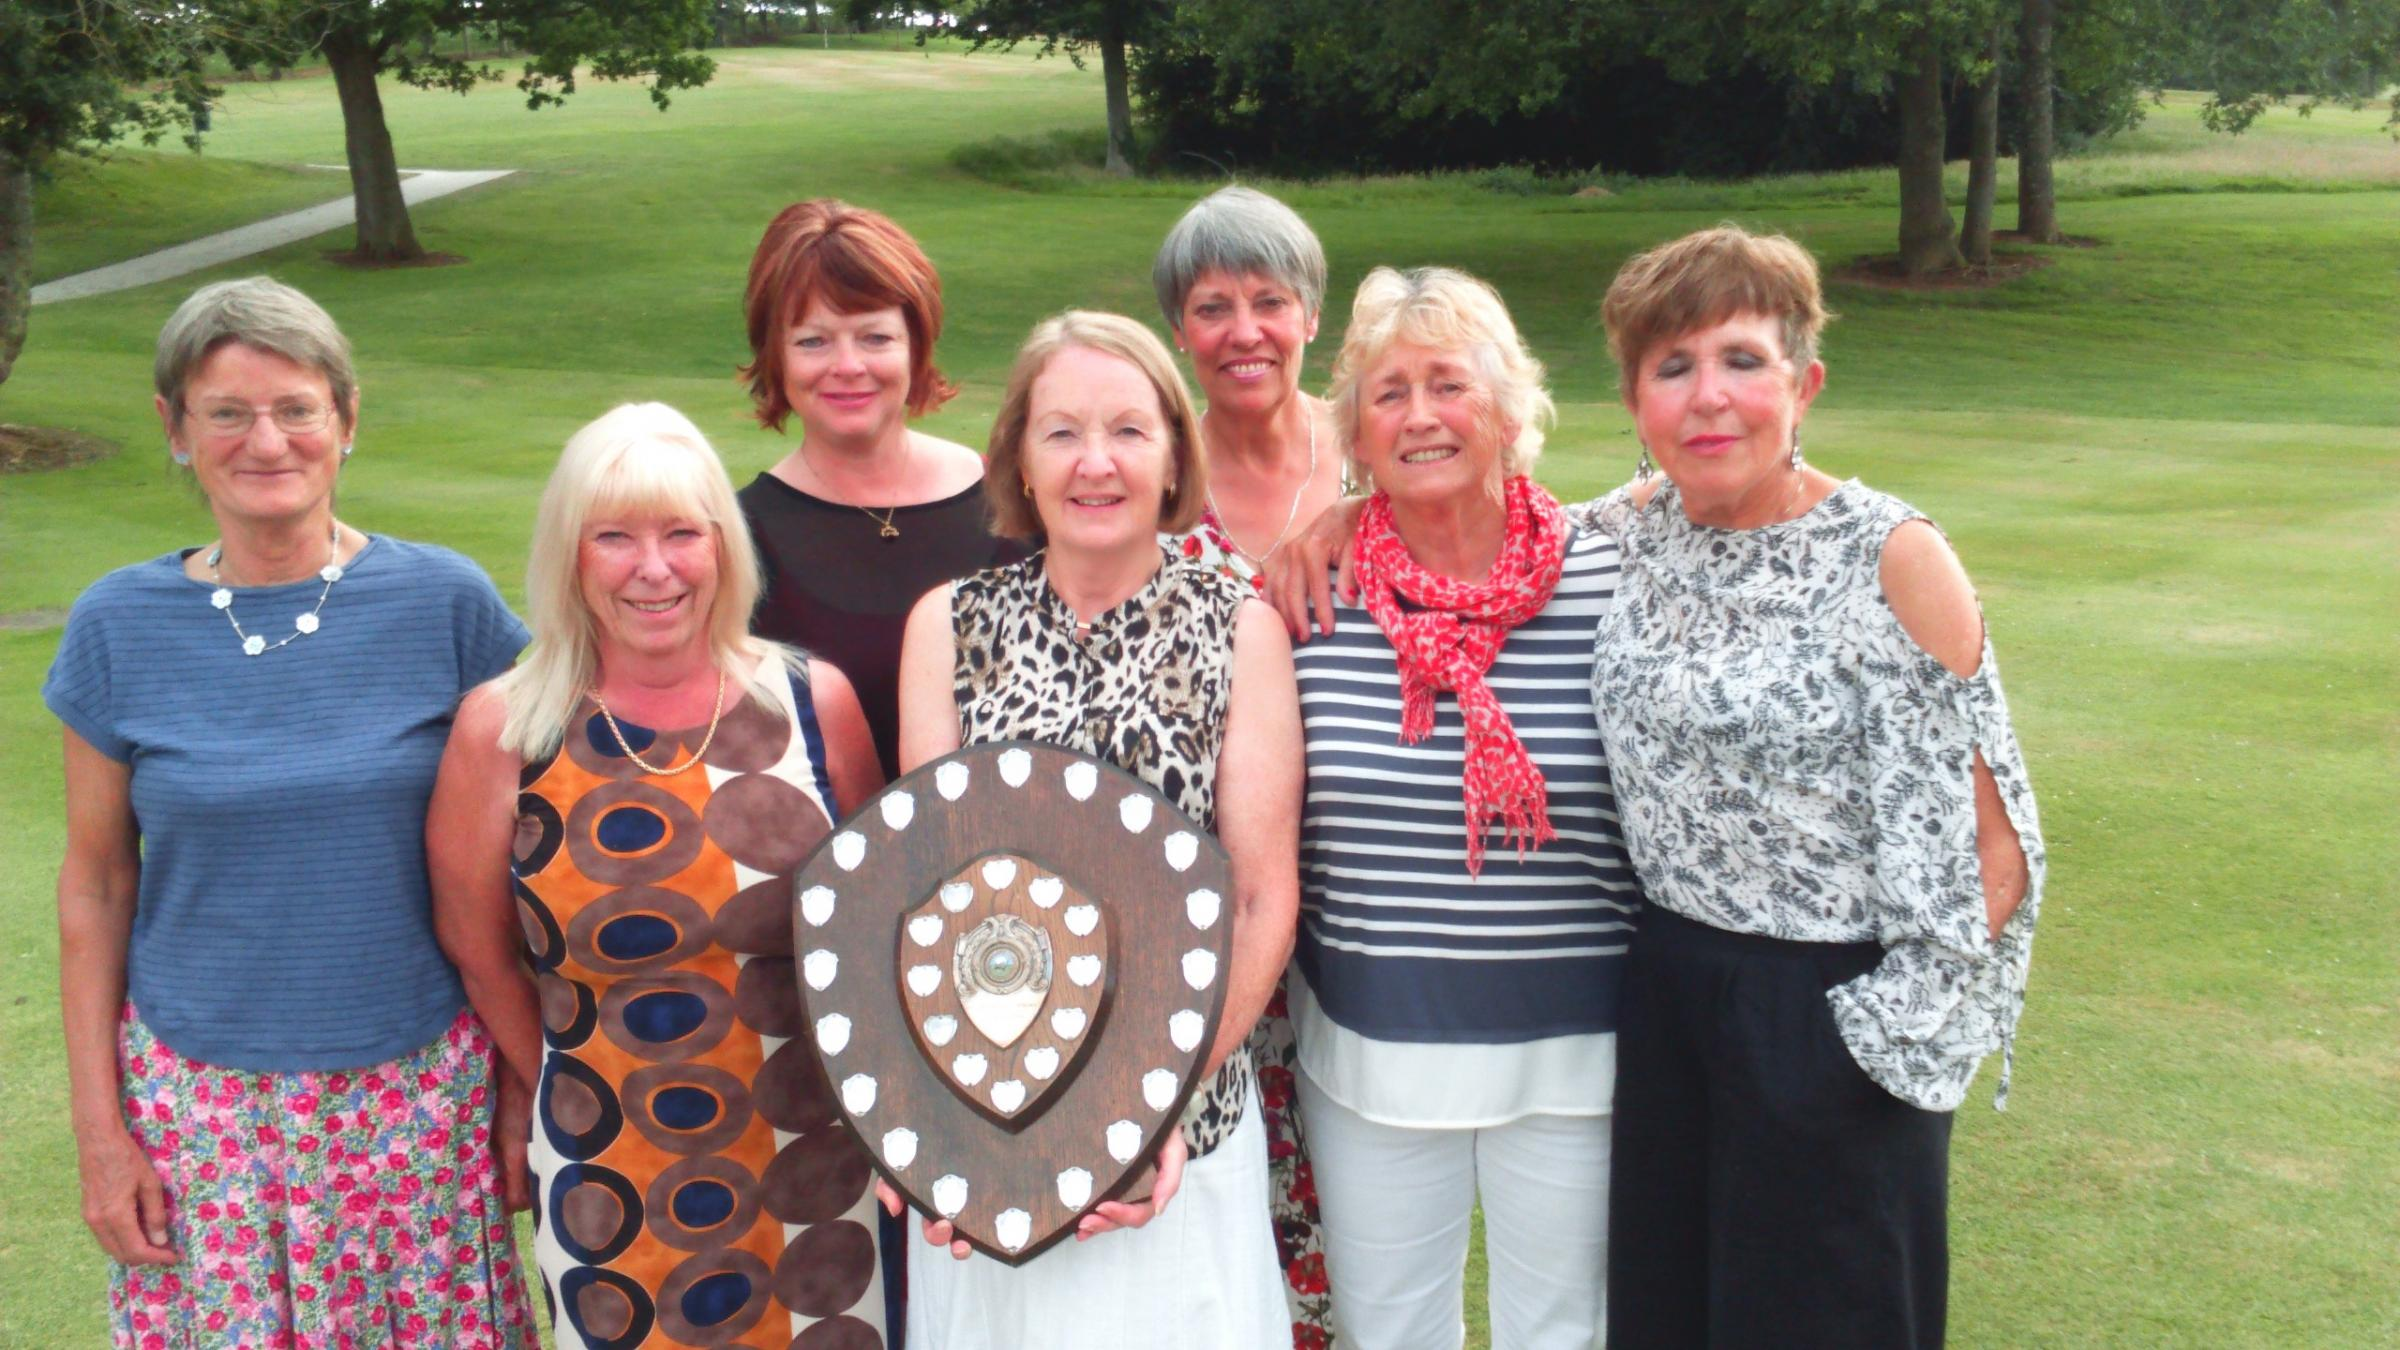 WINNERS: Enmore Park Ladies (from left): Judy Hancock, Sarah Blake, Shanni Whisler, Lady Captain Linda Anniss with the trophy, Sally Dymock, Eve Bolton and Pat Rodgers.